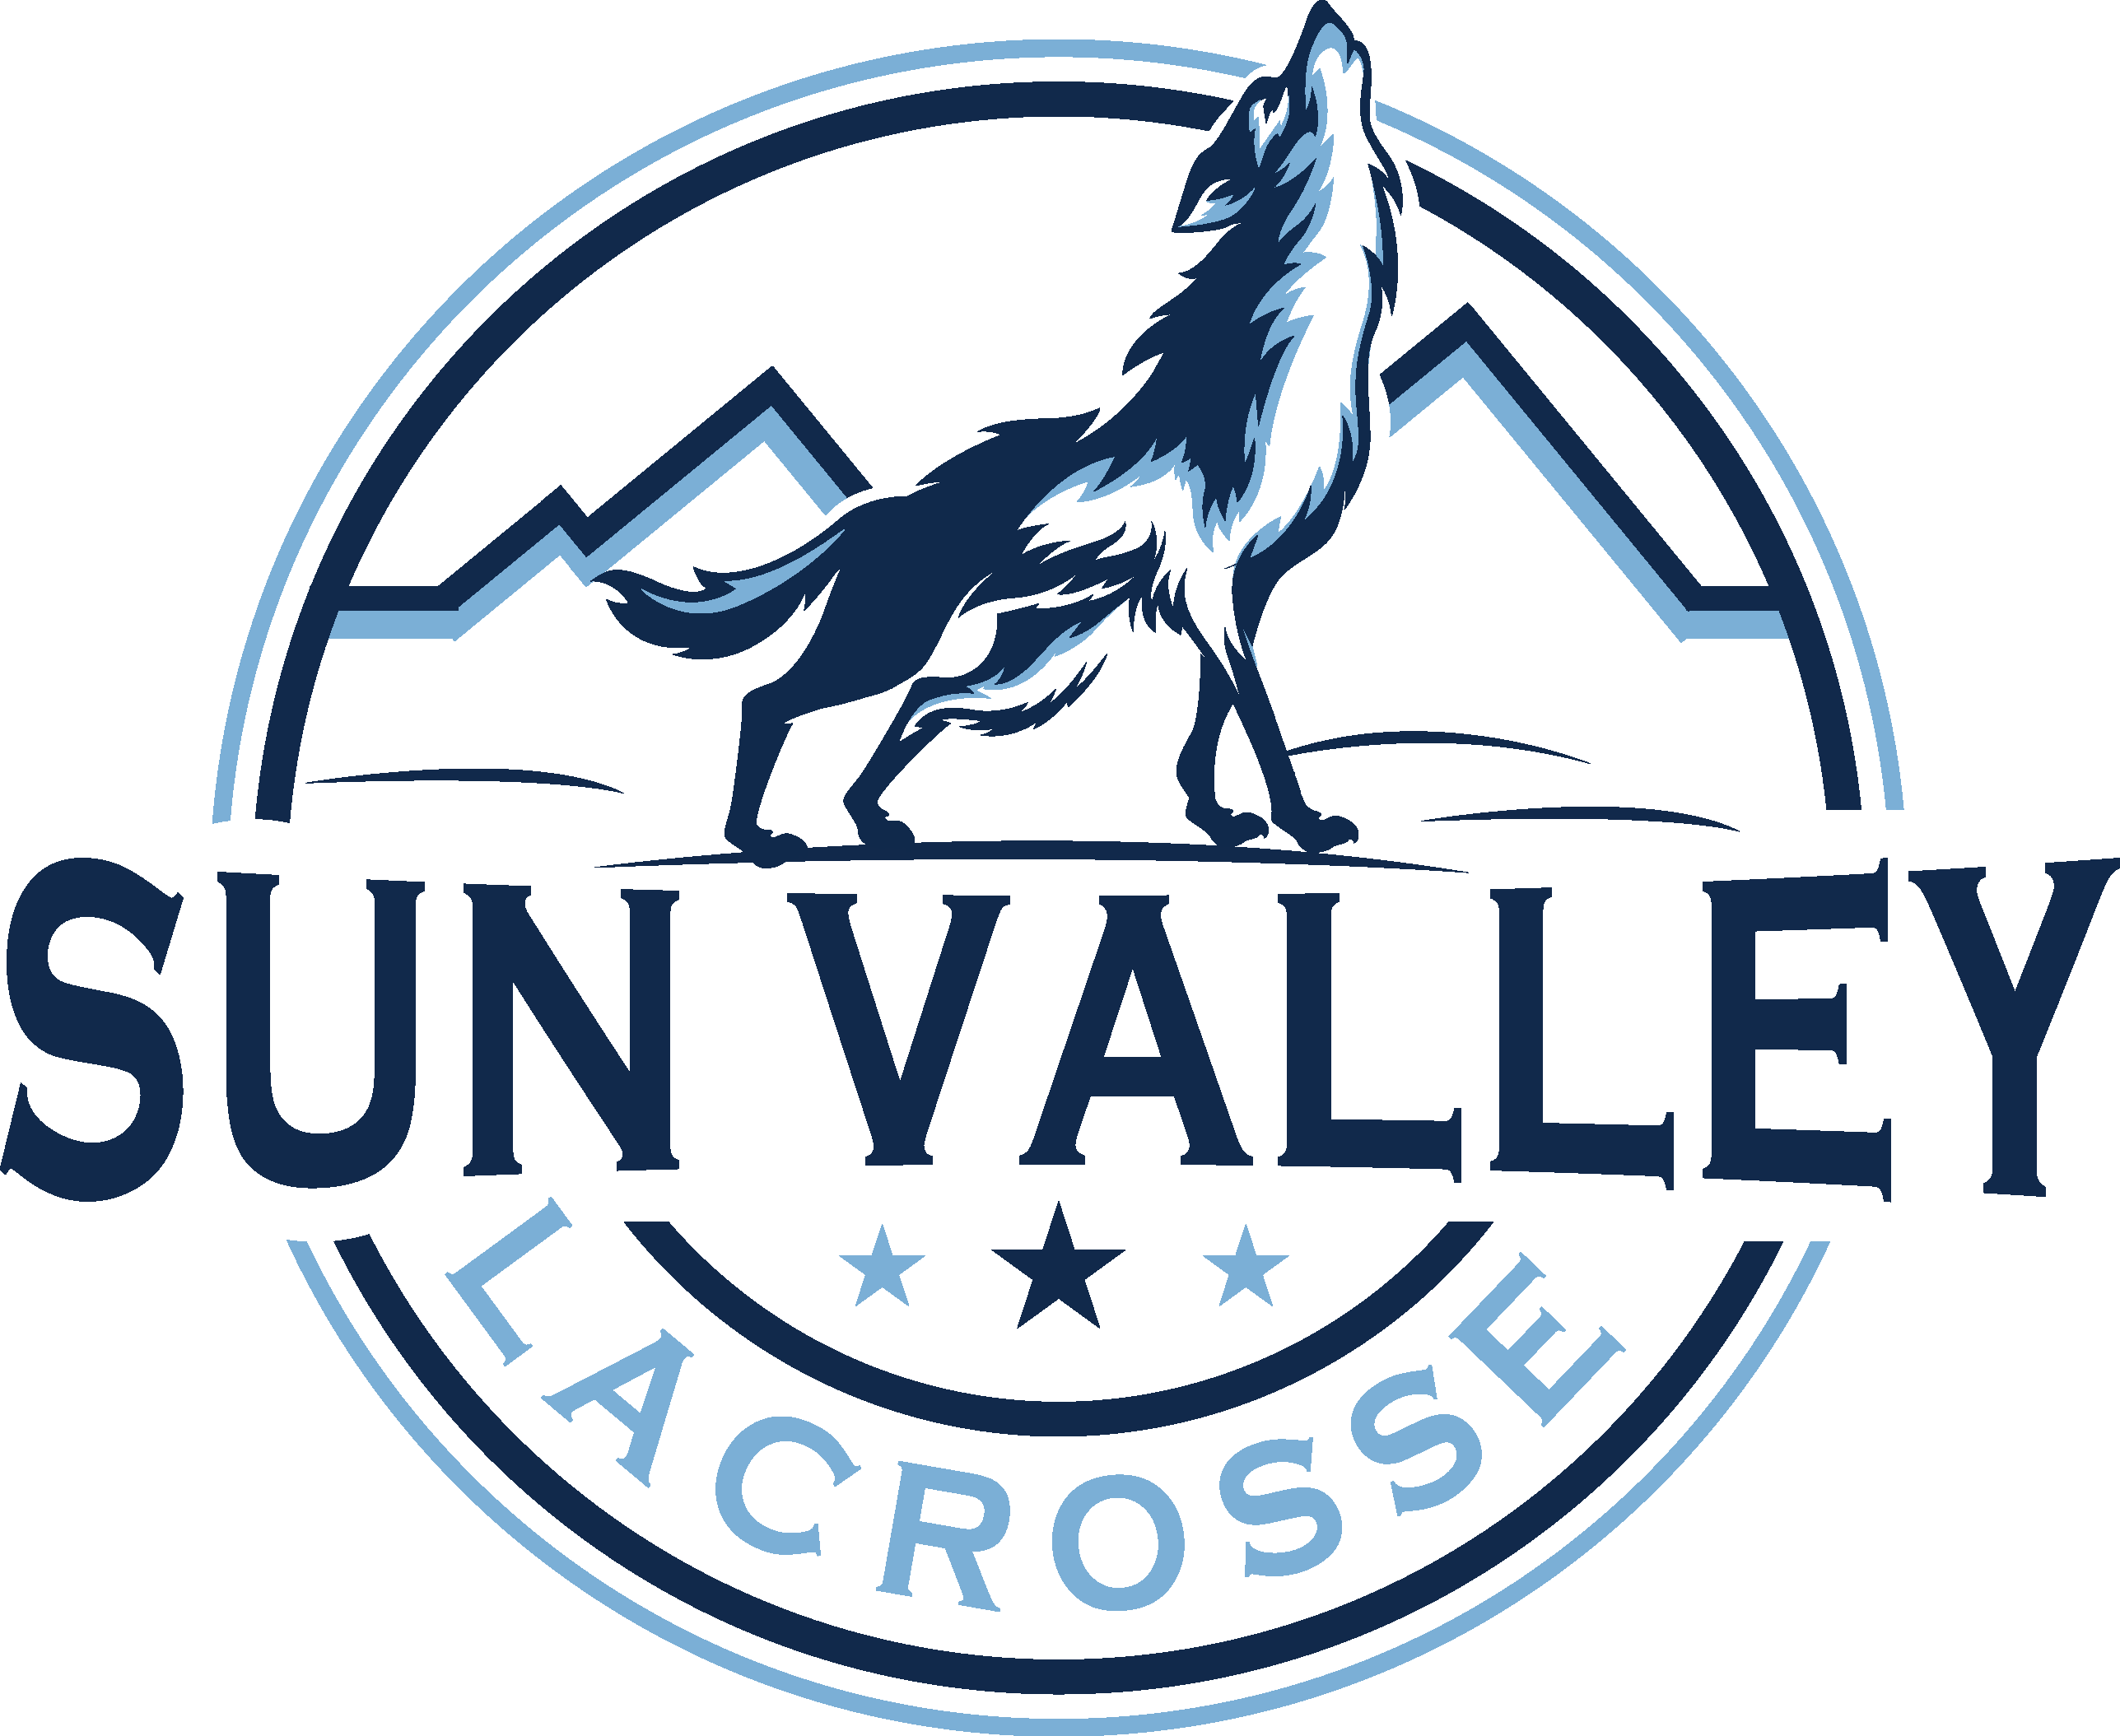 SUN VALLEY LACROSSE